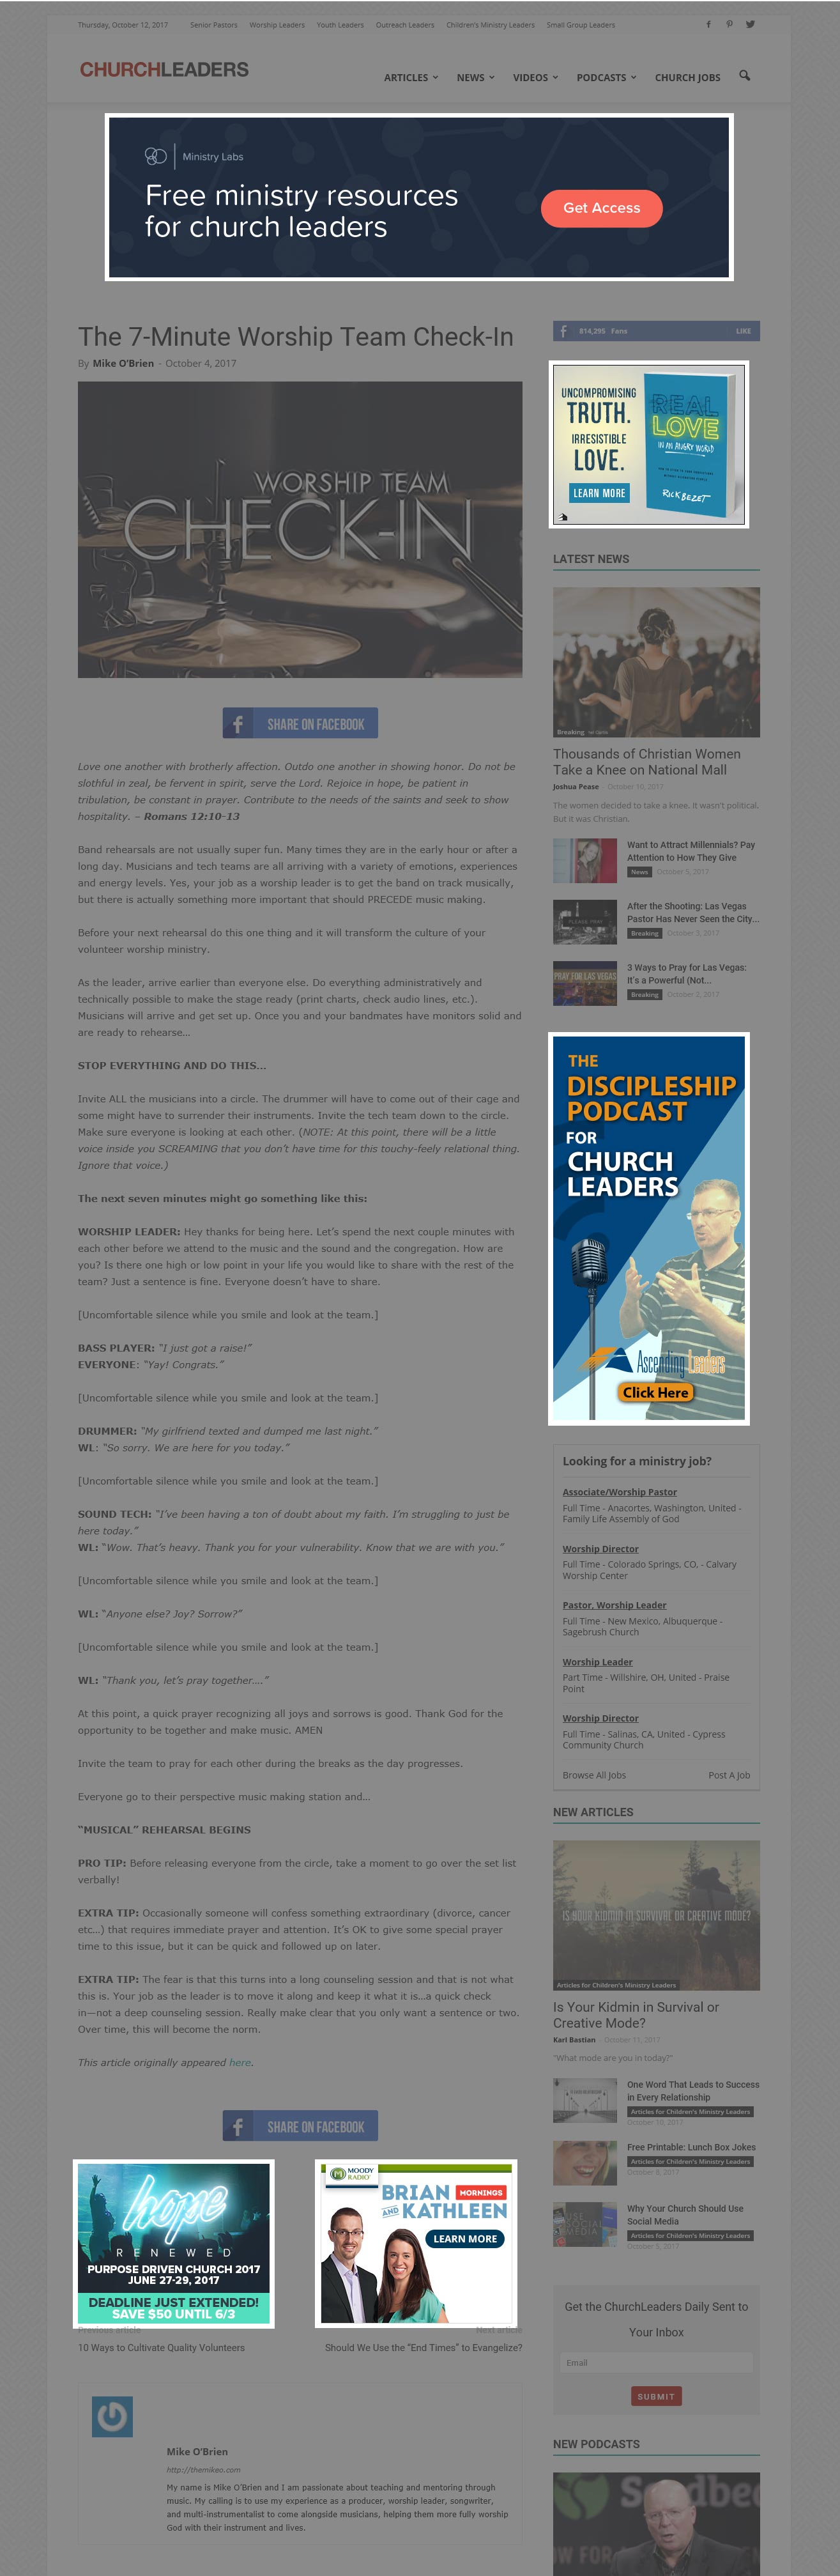 CL Worship Leaders Online Display